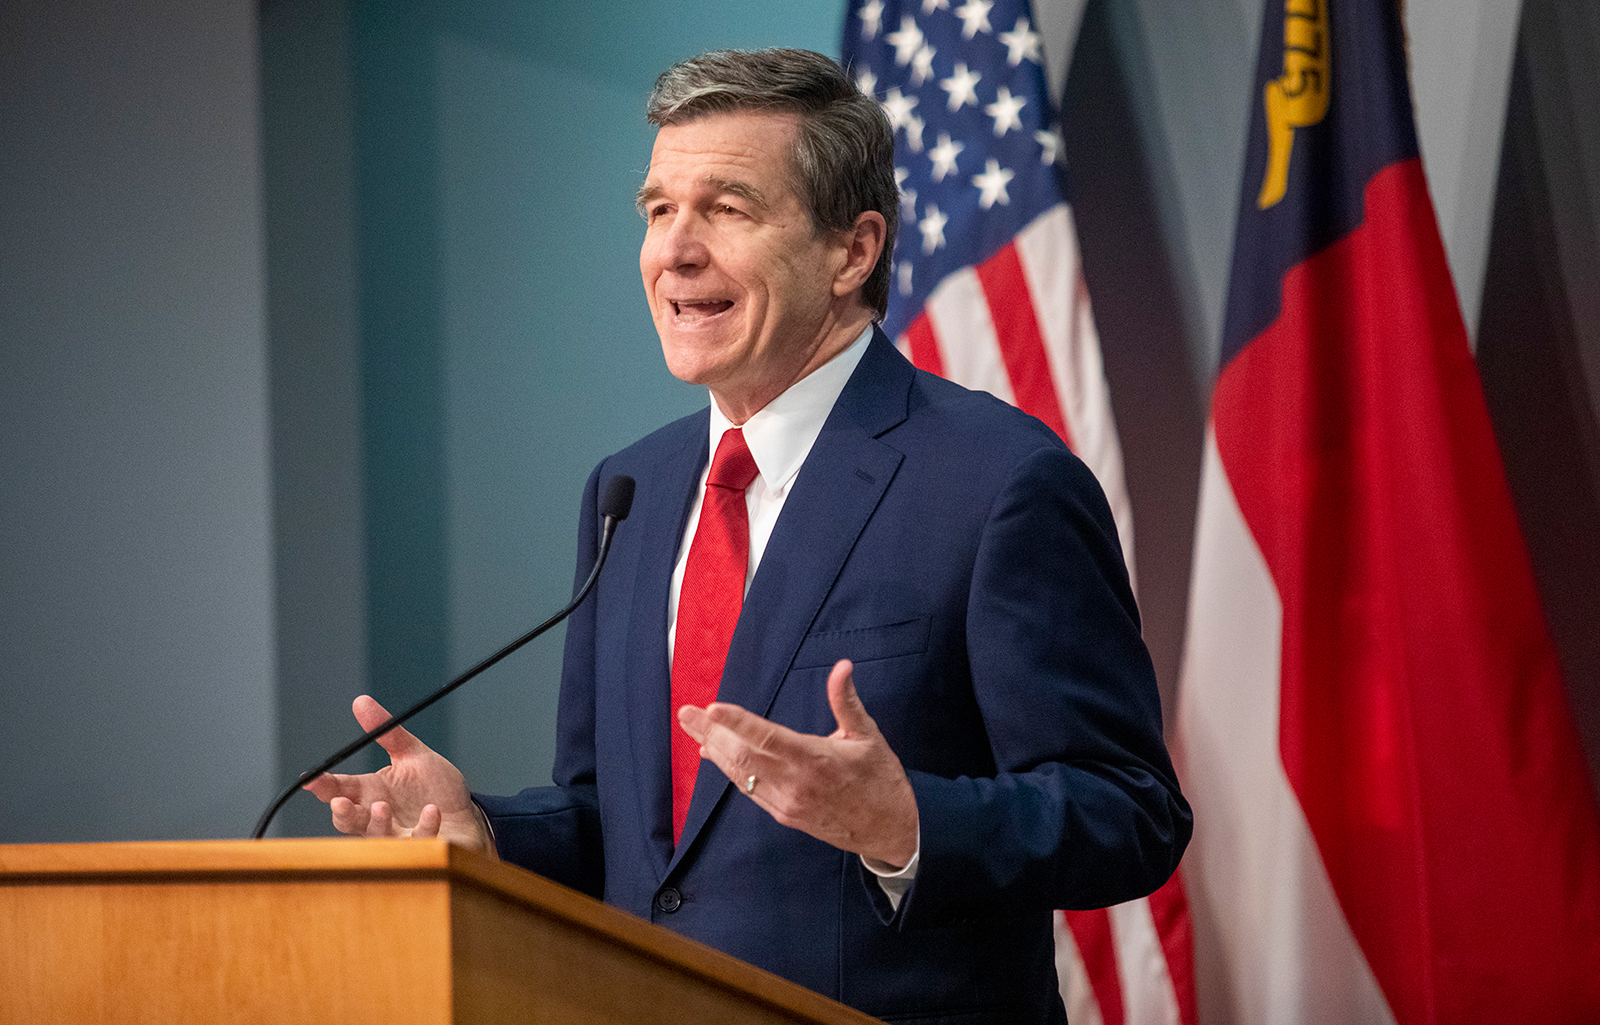 Gov. Roy Cooper speaks during a briefing on North Carolina's coronavirus pandemic response on May 5, at the NC Emergency Operations Center in Raleigh.